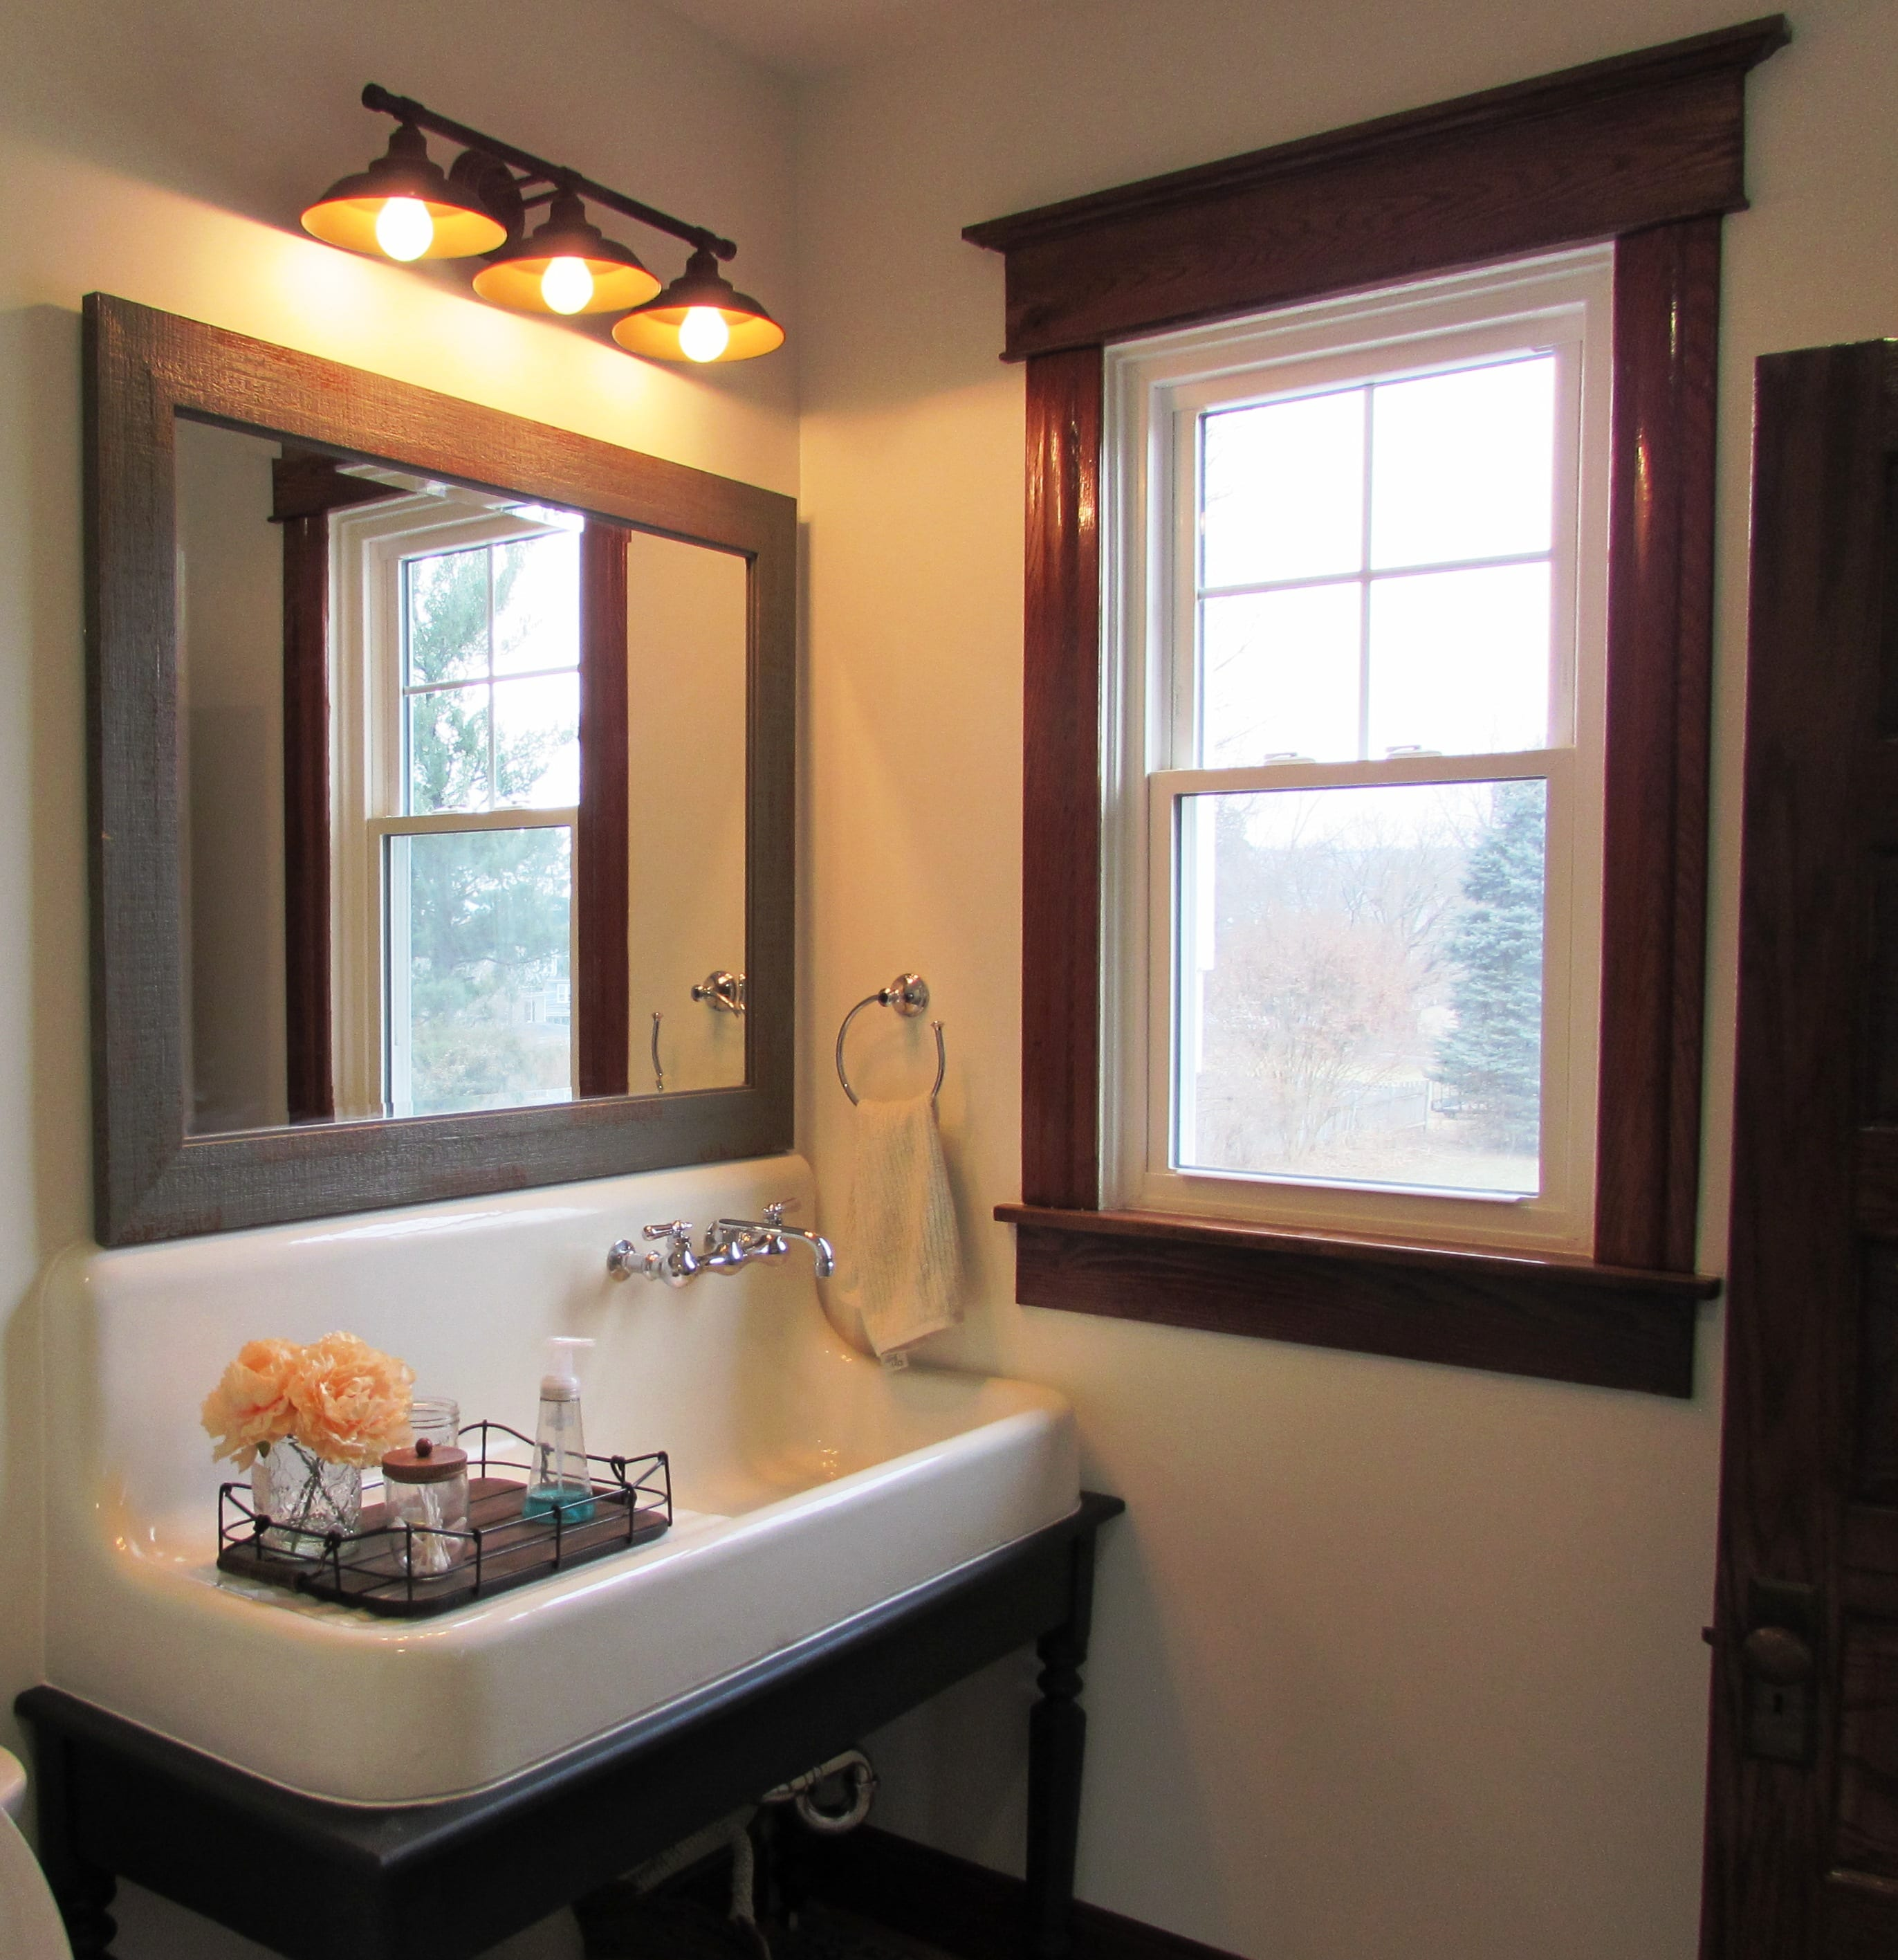 A Historic Home In Middletown Md Has All The Bathrooms